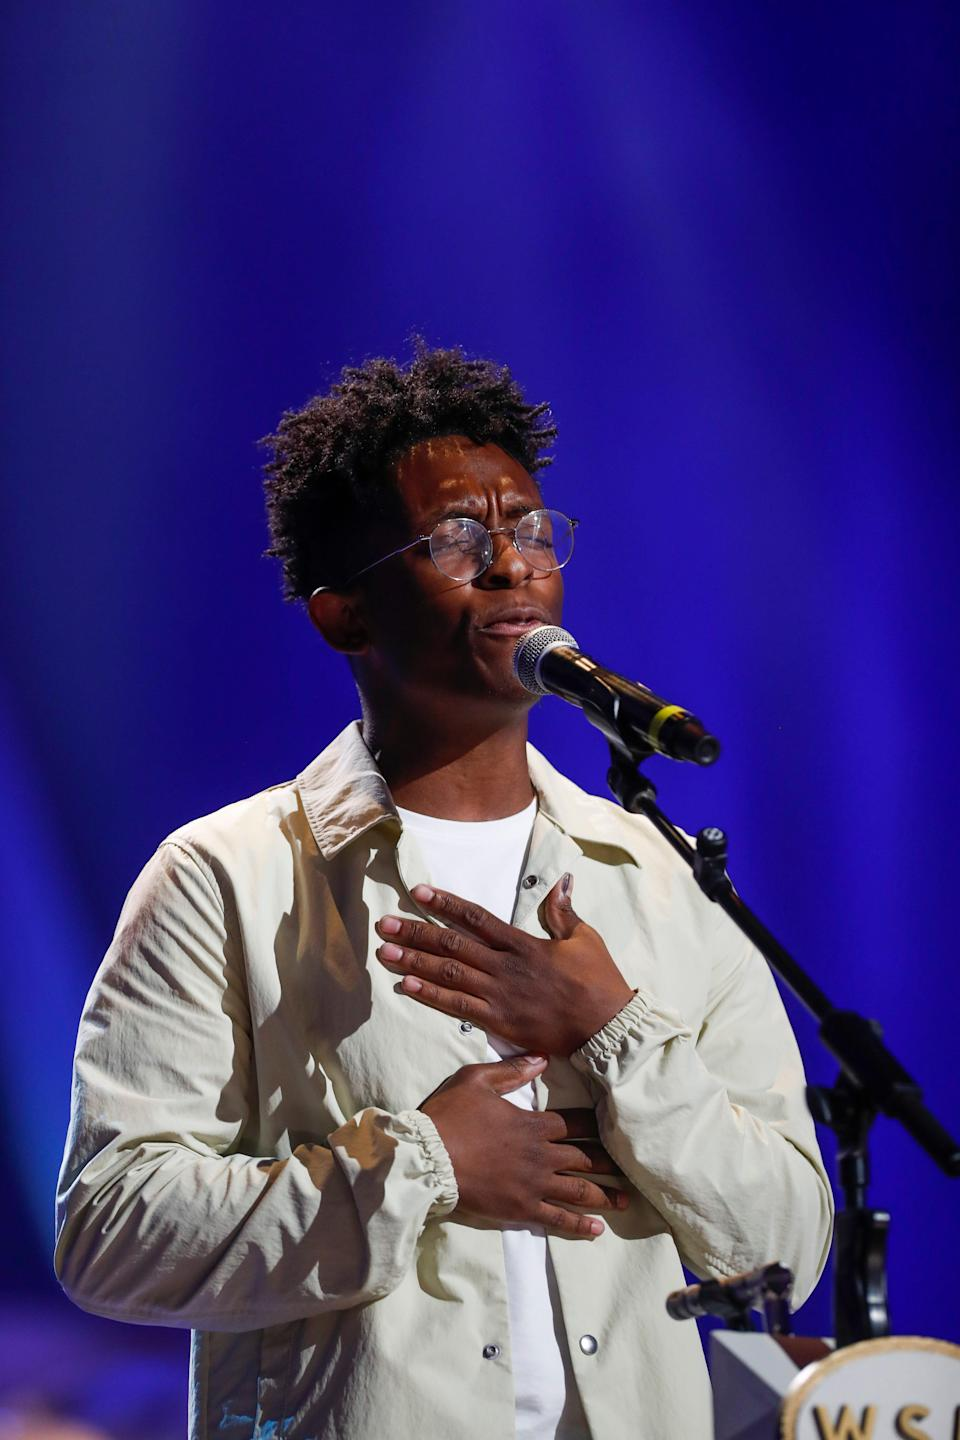 """Breland performs """"Cross Country"""" at Loretta Lynn's Friends Hometown Rising benefit concert for flood relief at the Grand Ole Opry in Nashville, Tenn., on Sept. 13."""